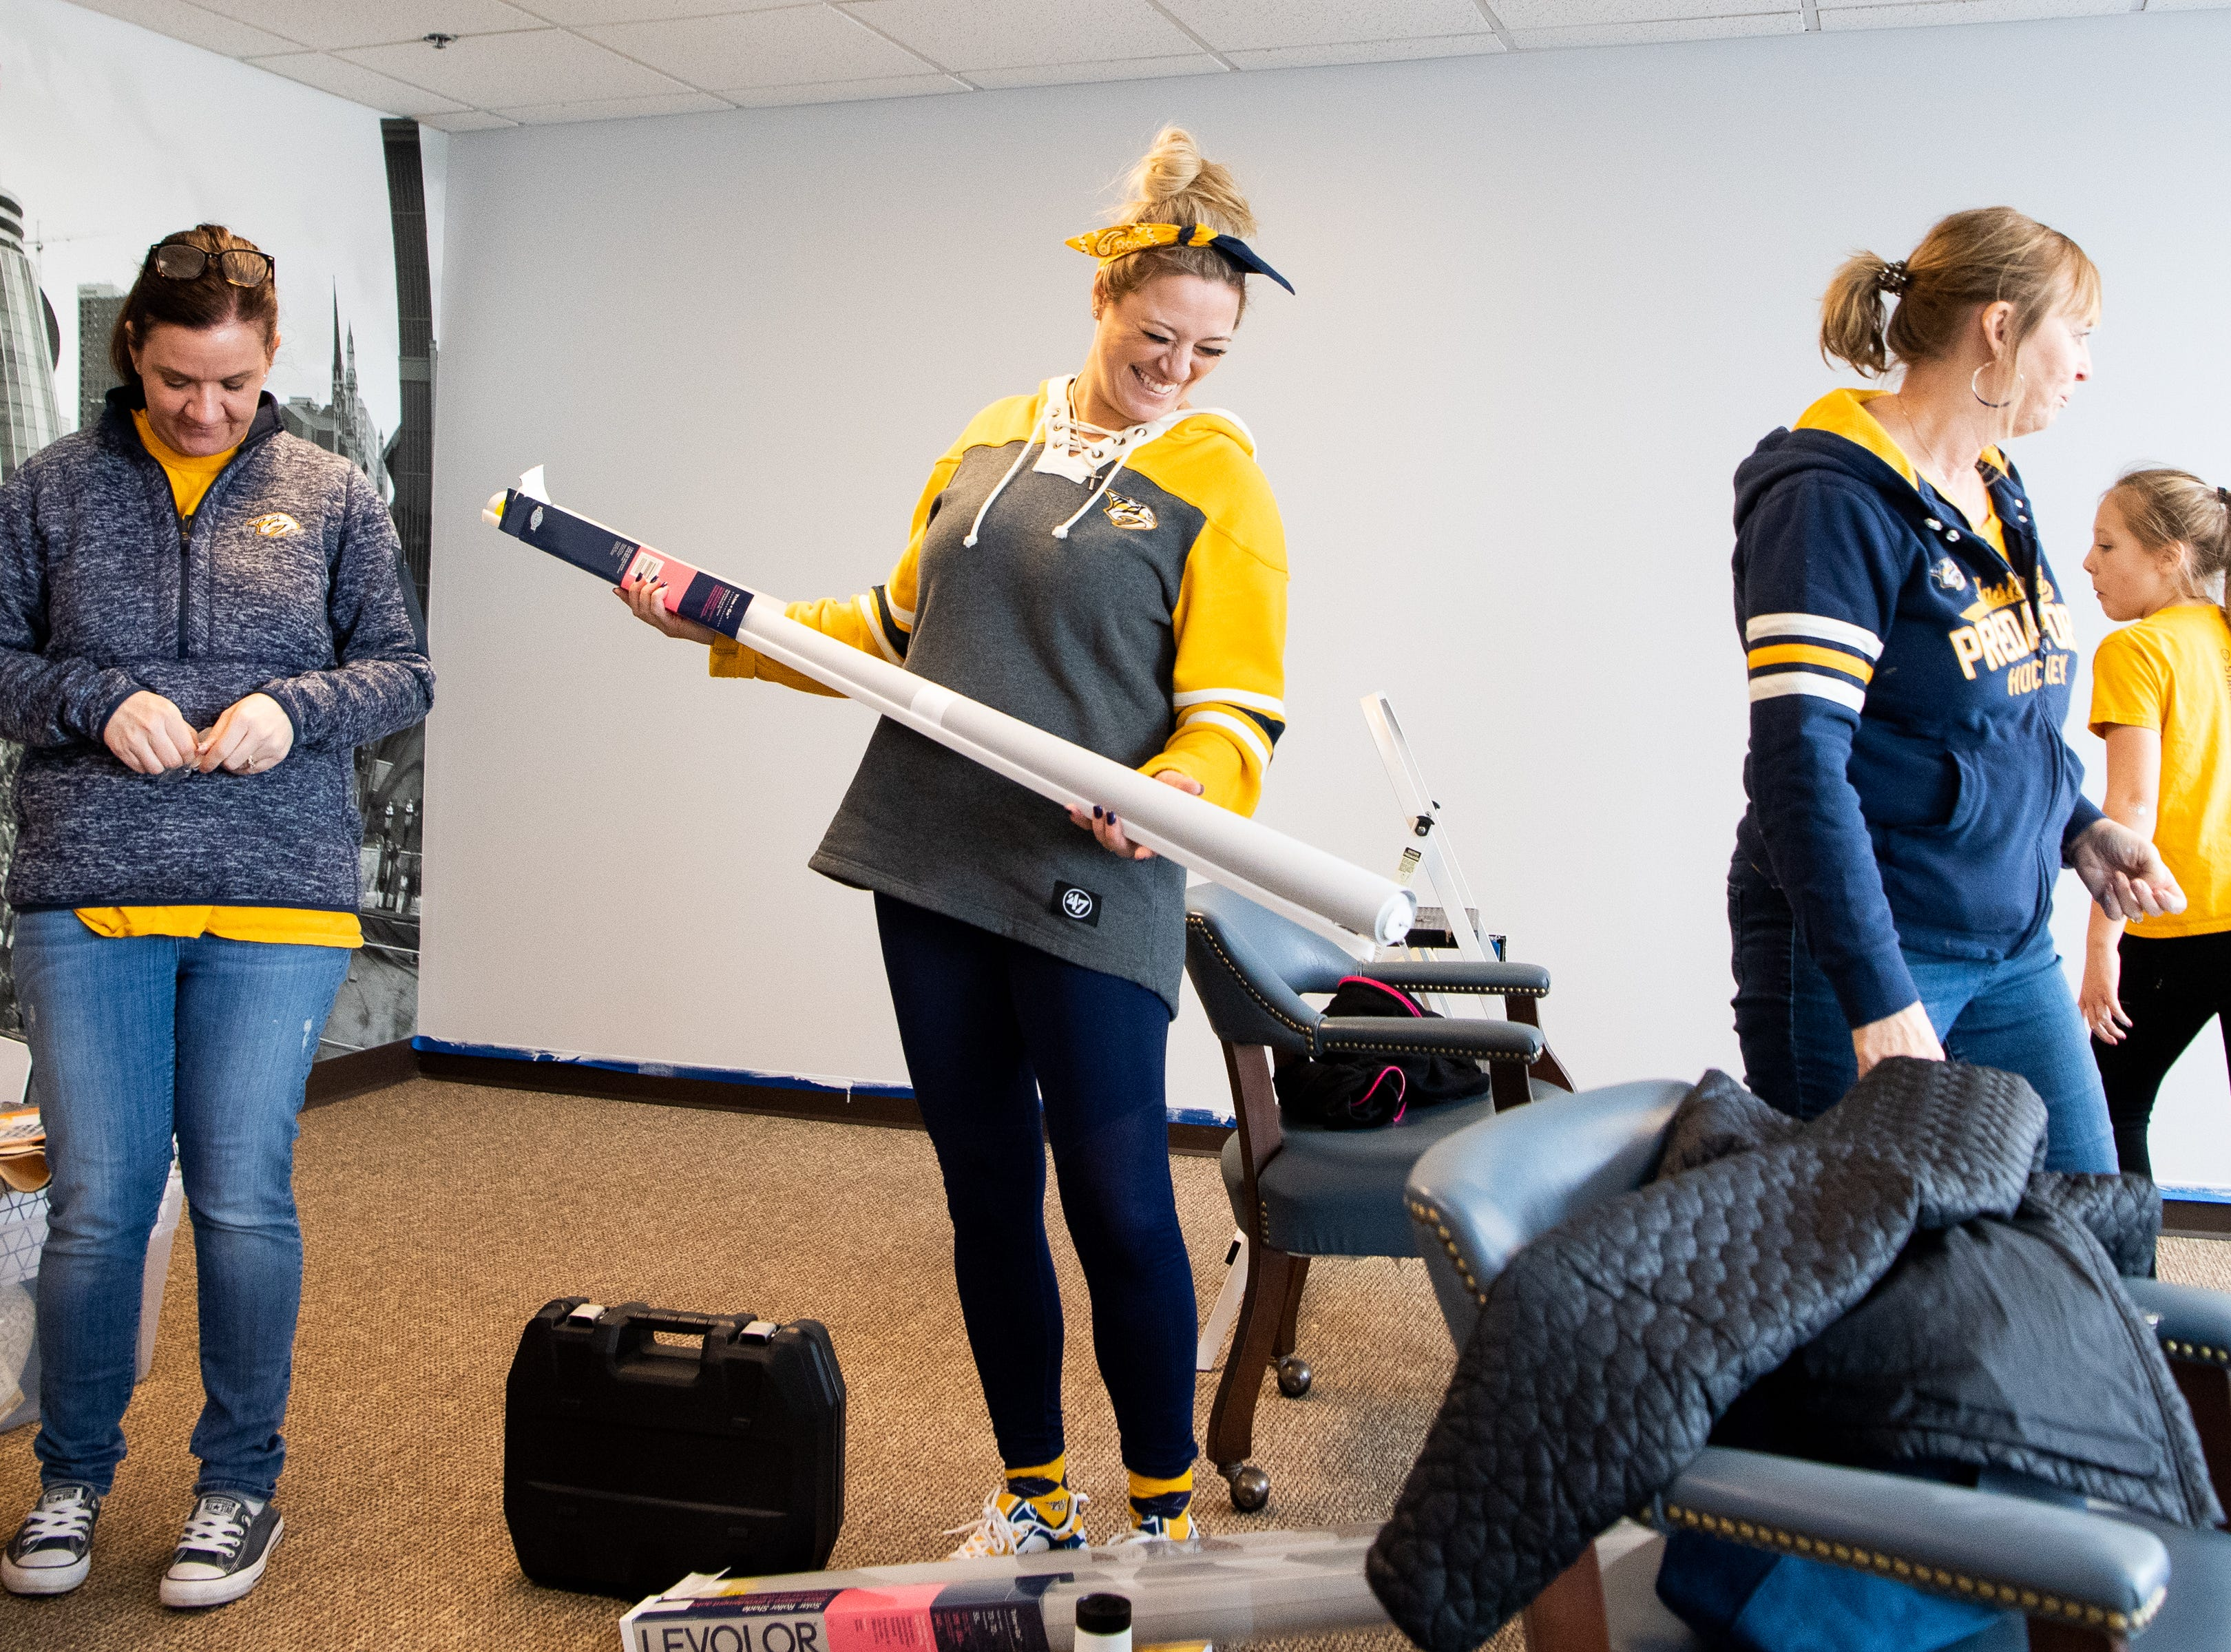 Tracey Henry, Kristen Laviolette and Rhonda McCarthy (from left) arrange materials to makeover the entertainment room at Memorial Foundation Hope Lodge as a project for the wives, girlfriends and fiancees of the Nashville Predators Tuesday, March 12, 2019, in Nashville, Tenn.